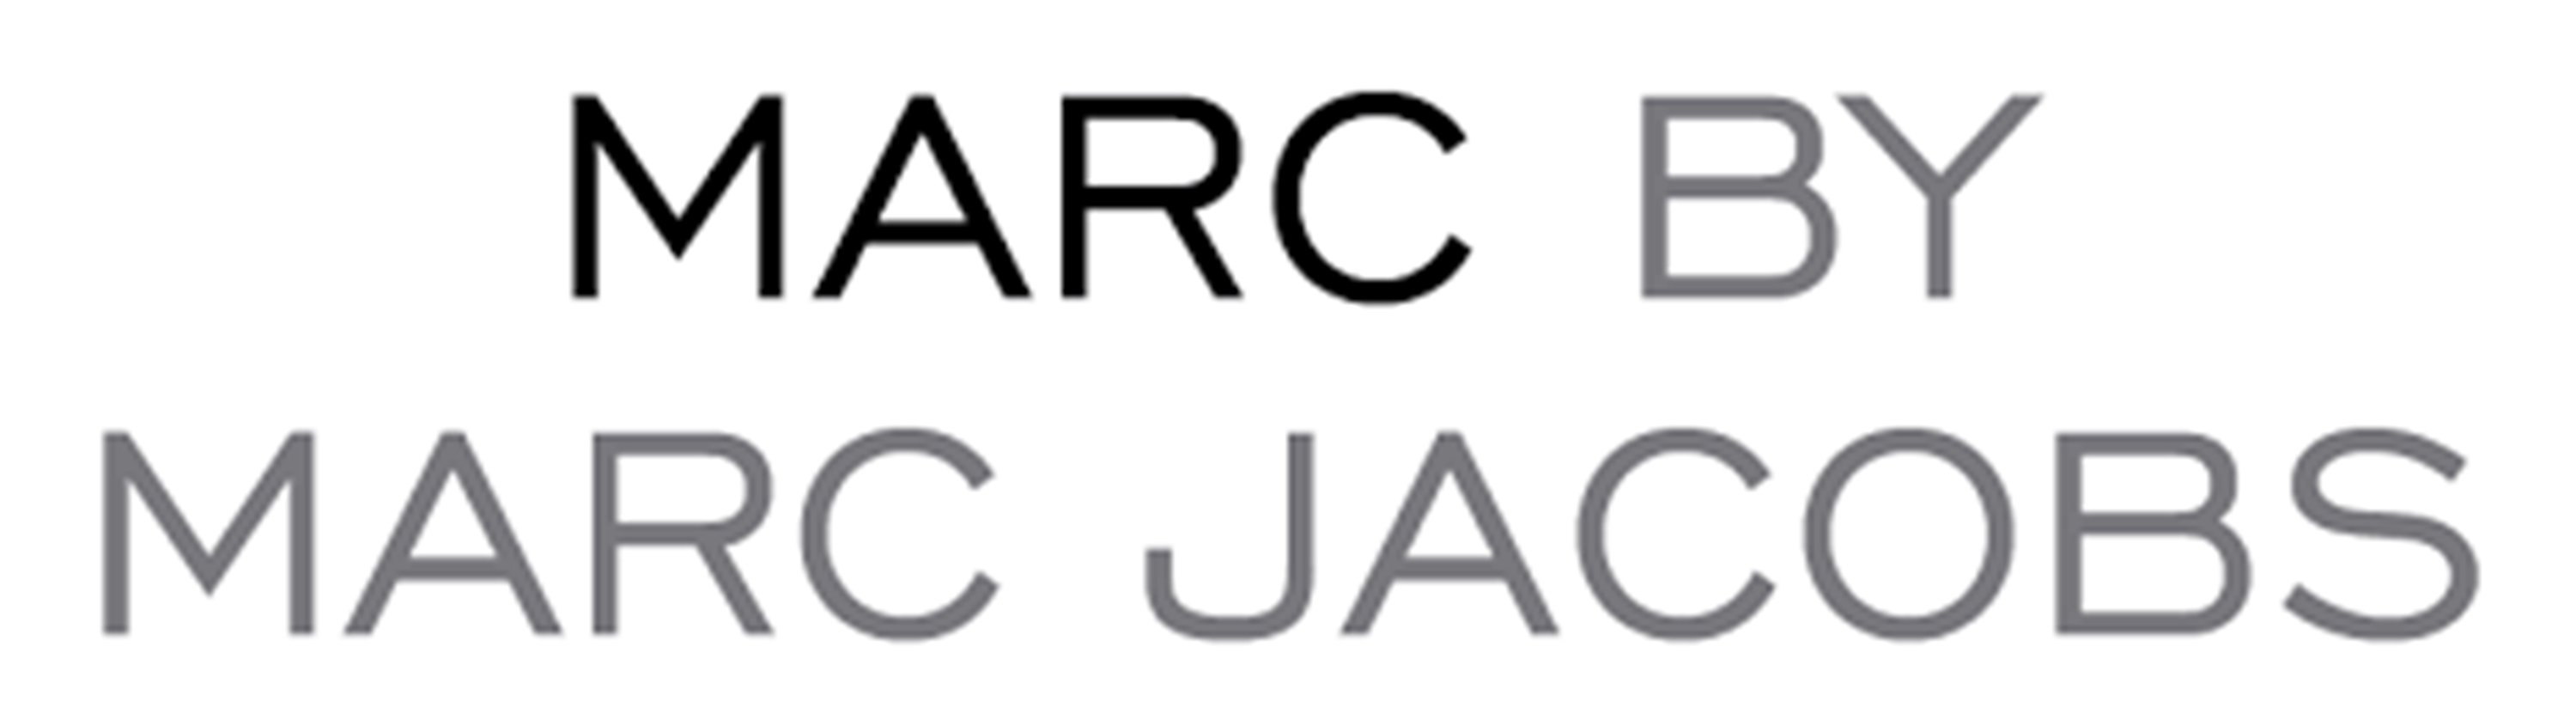 Marc Jackobs